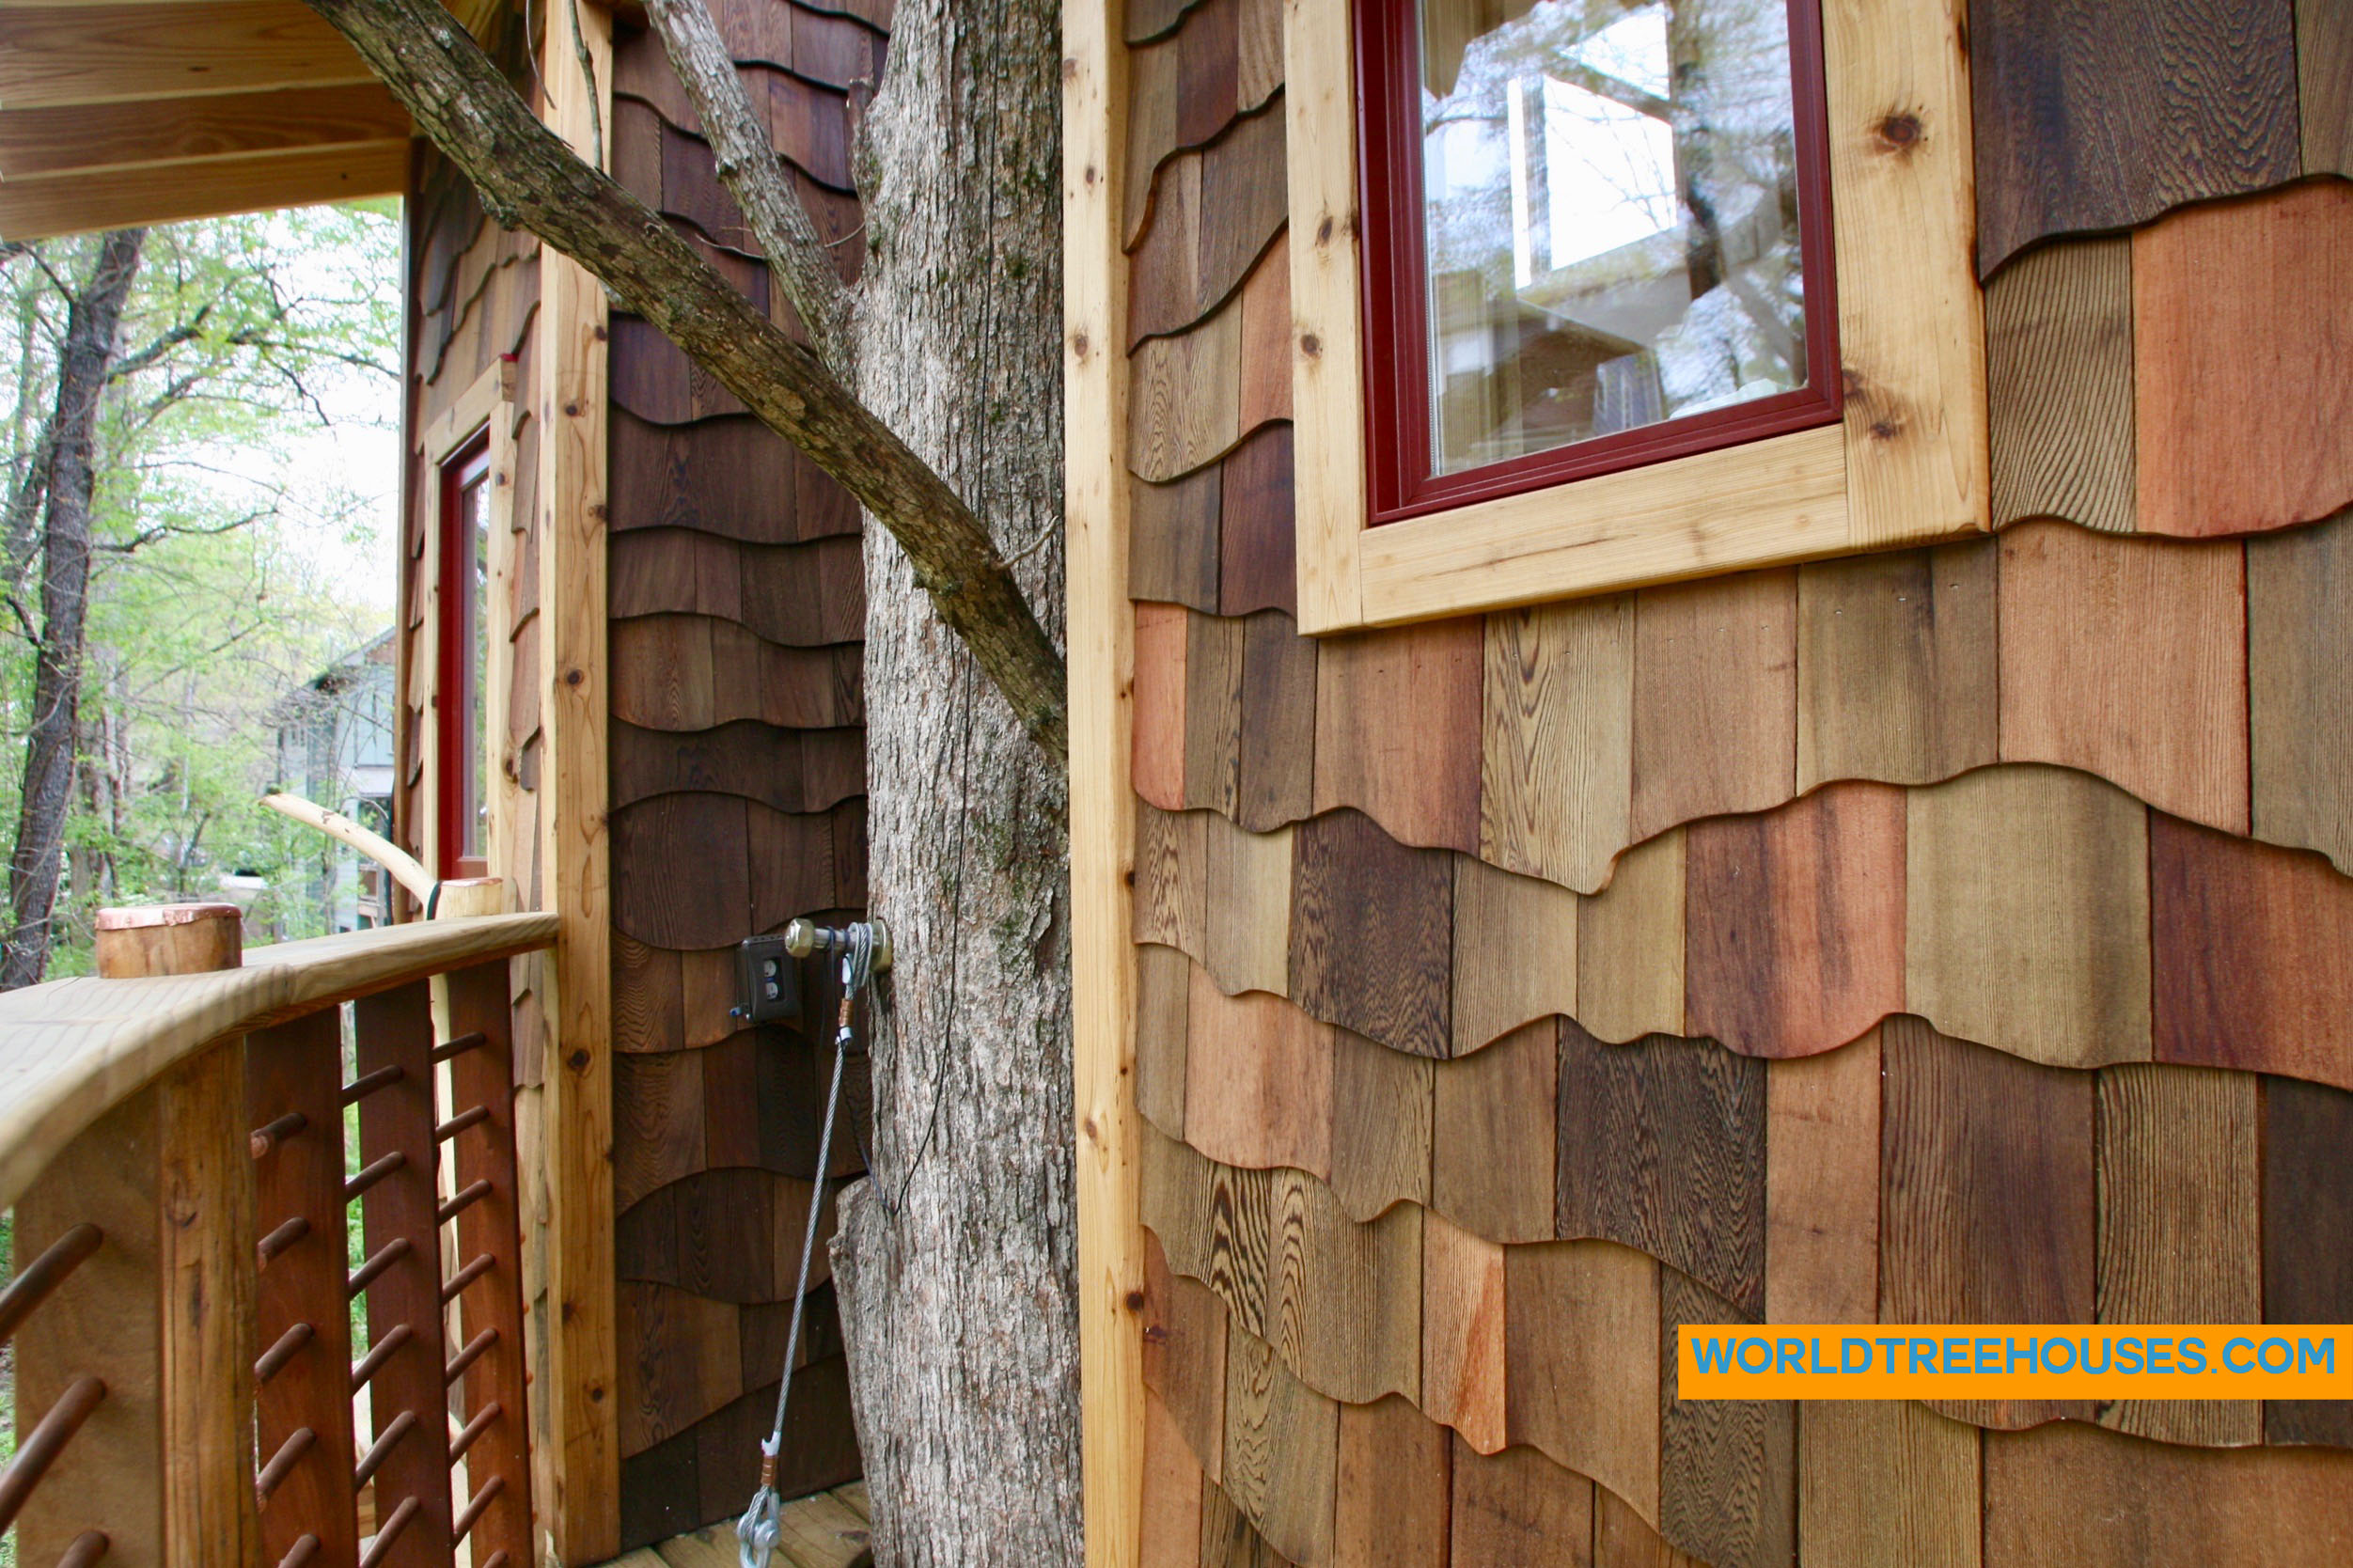 WNC treehouse builders : Tree and House